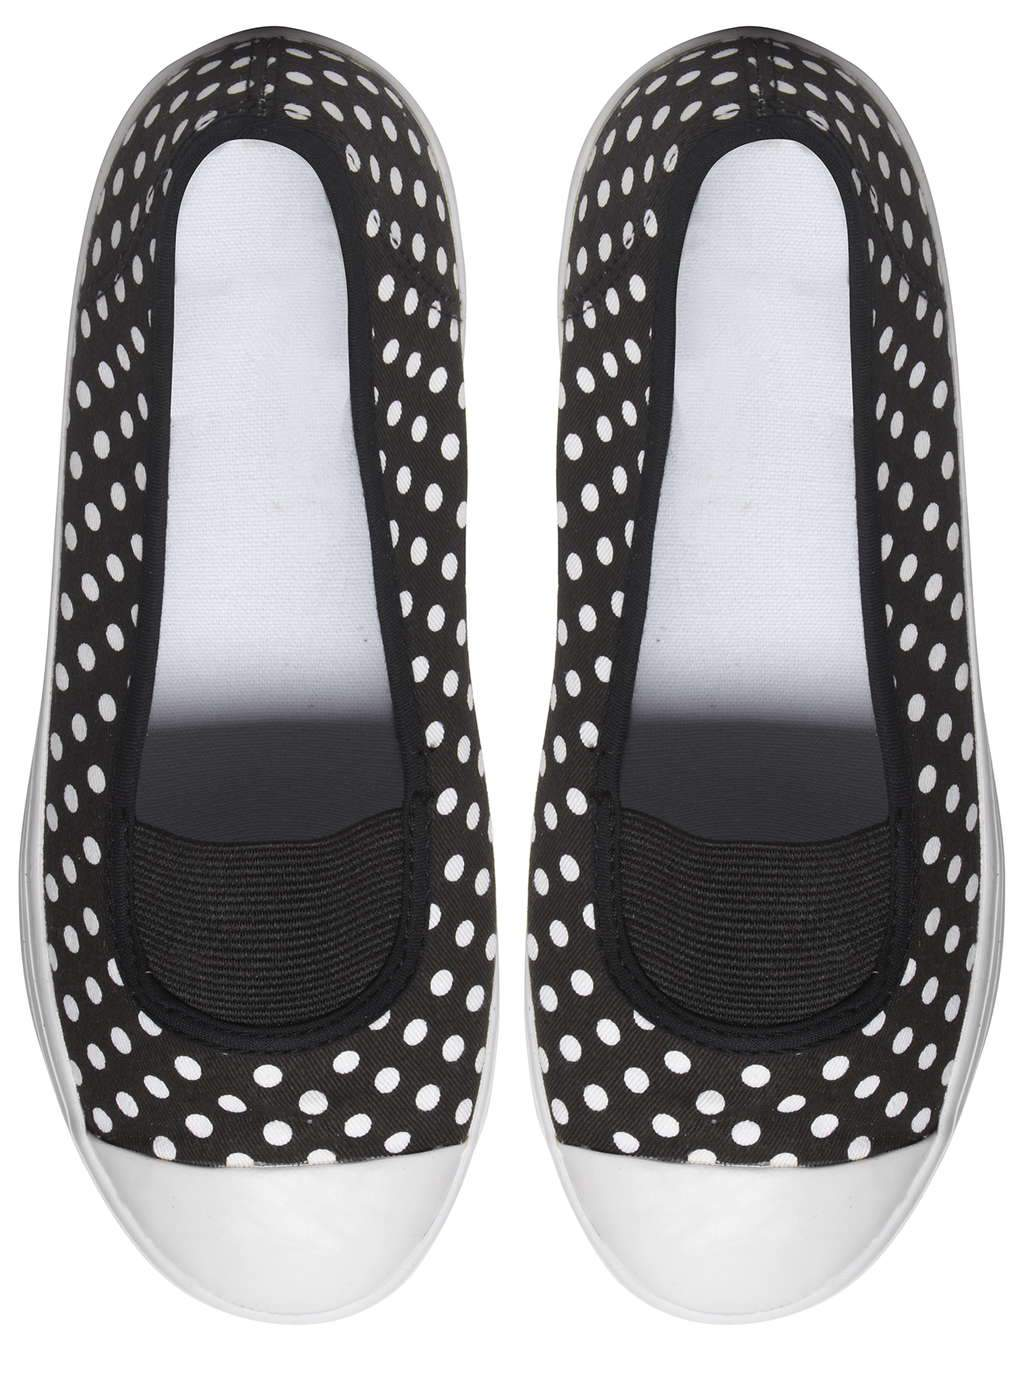 15 Fun Fancy Wide Width Flats For Summer